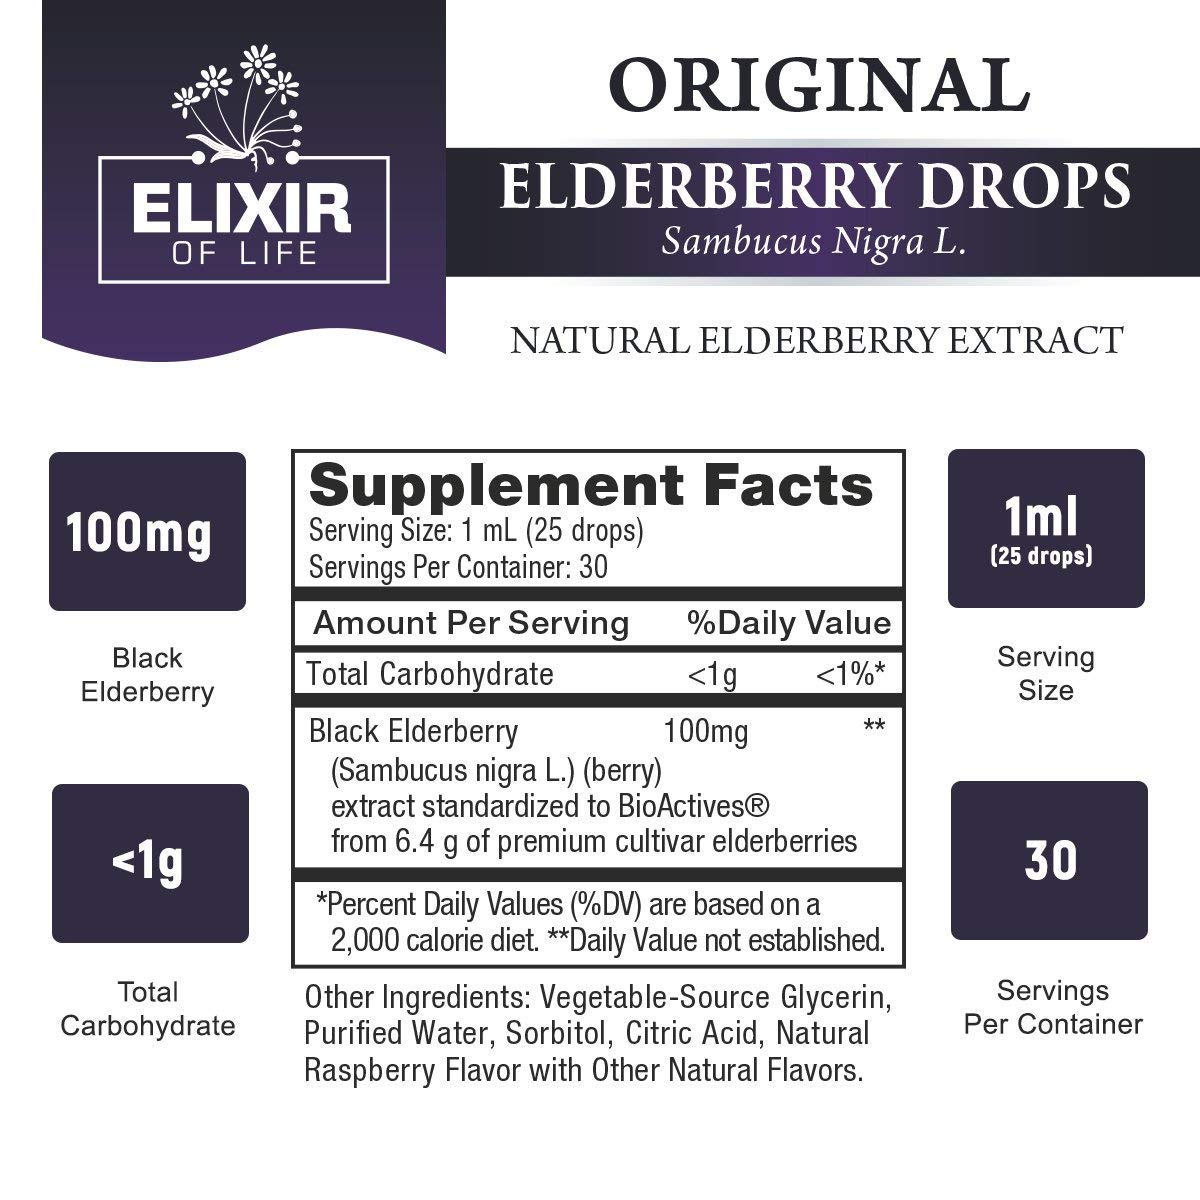 Elderberry Drops - Potent Immunity booster, Allergy relief, Cold & Seasonal Relief - Sambucus Nigra - USA Made by Elixir Of Life (Image #2)